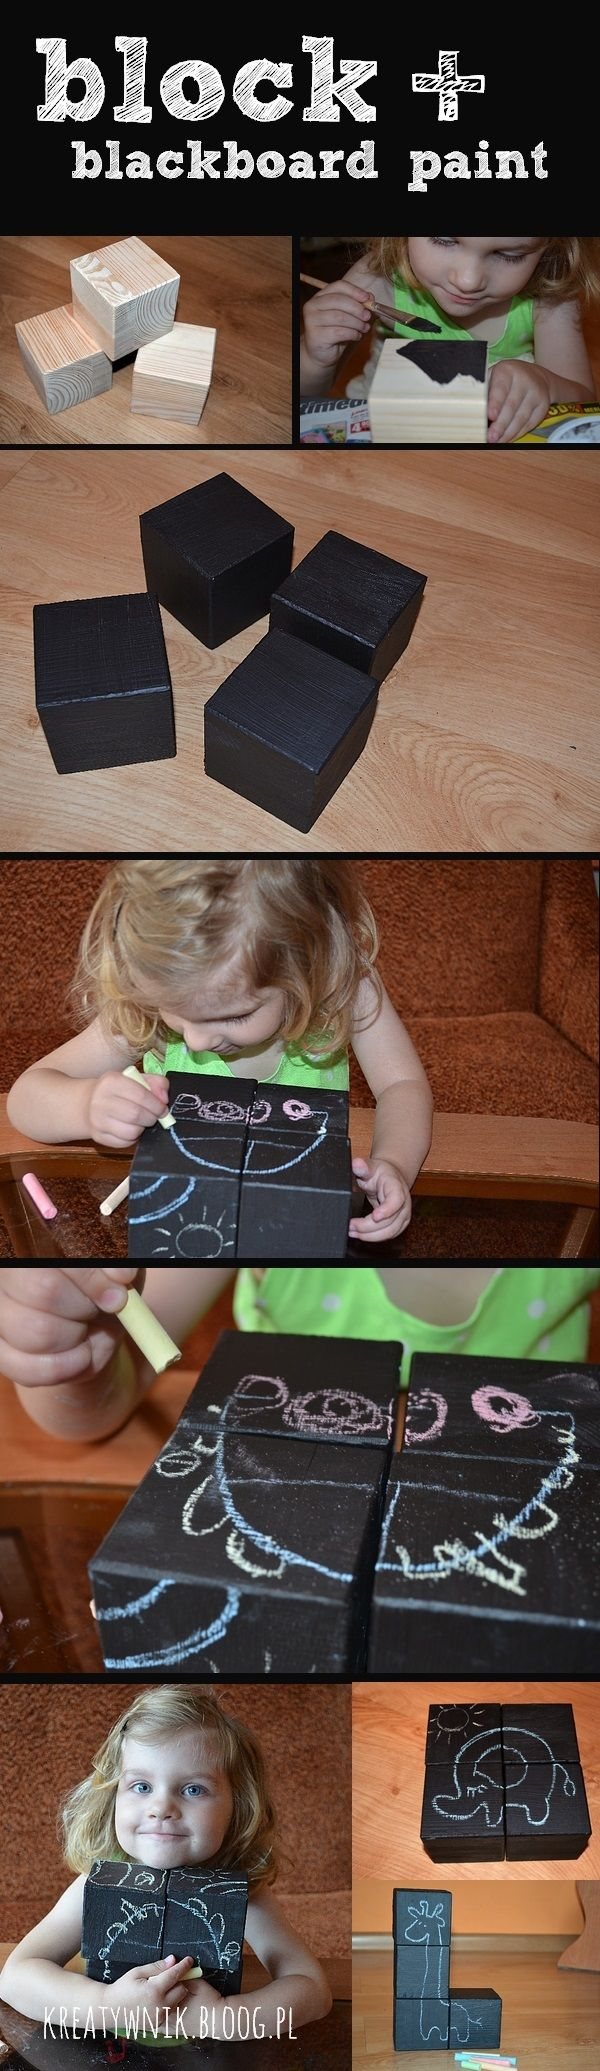 Blocks + blackboard paint = lots of ideas for a successful play and learn...